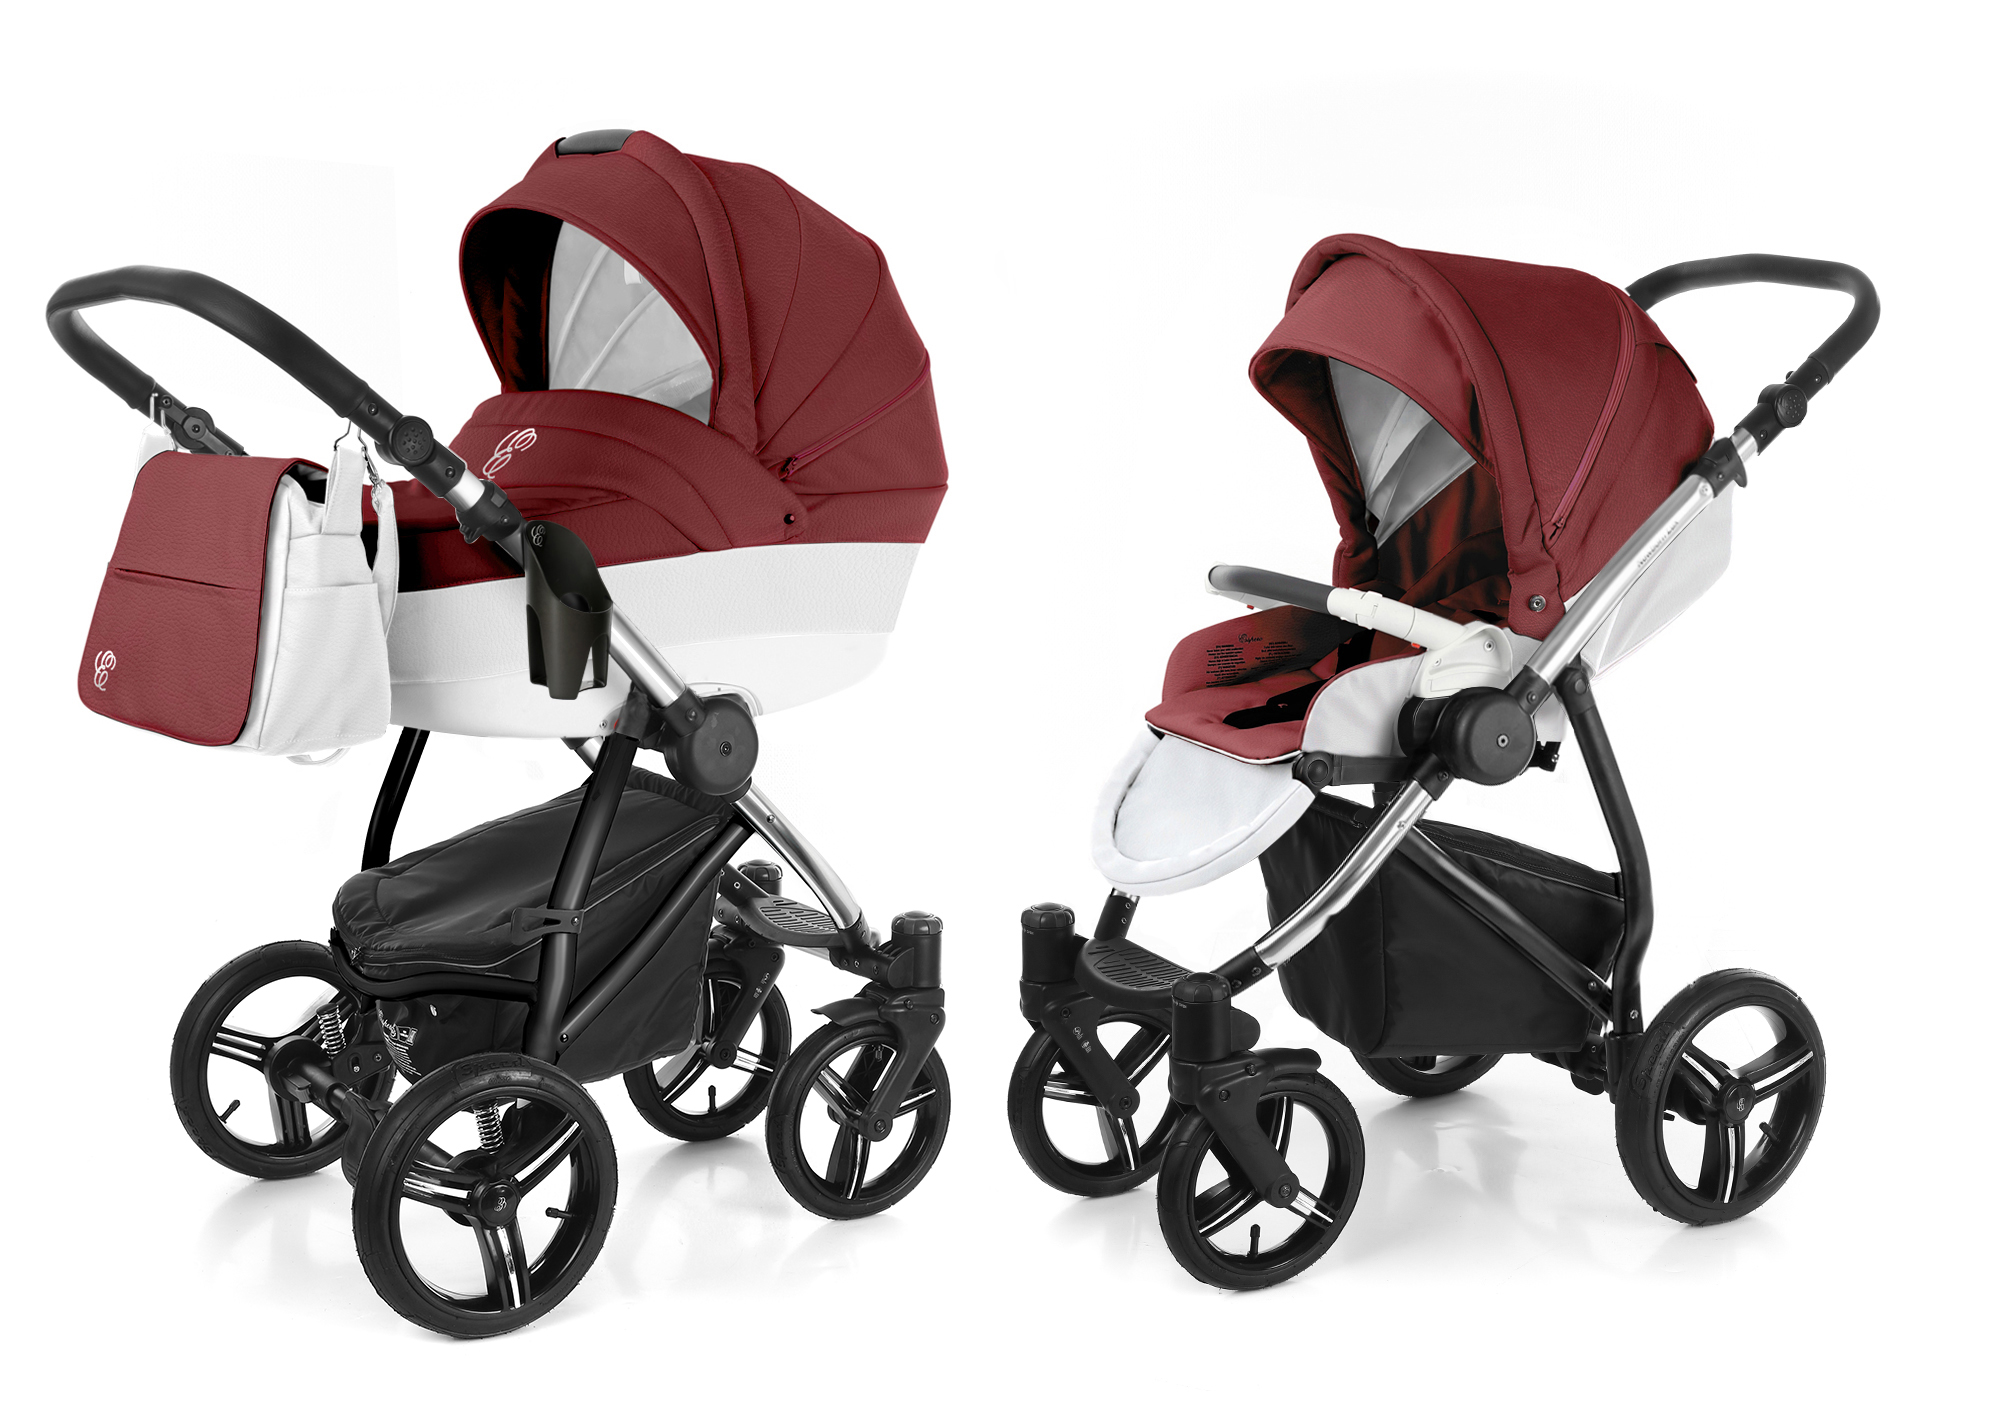 Коляска 2 в 1 Esspero Grand Newborn Lux (шасси Chrome). Фото N7